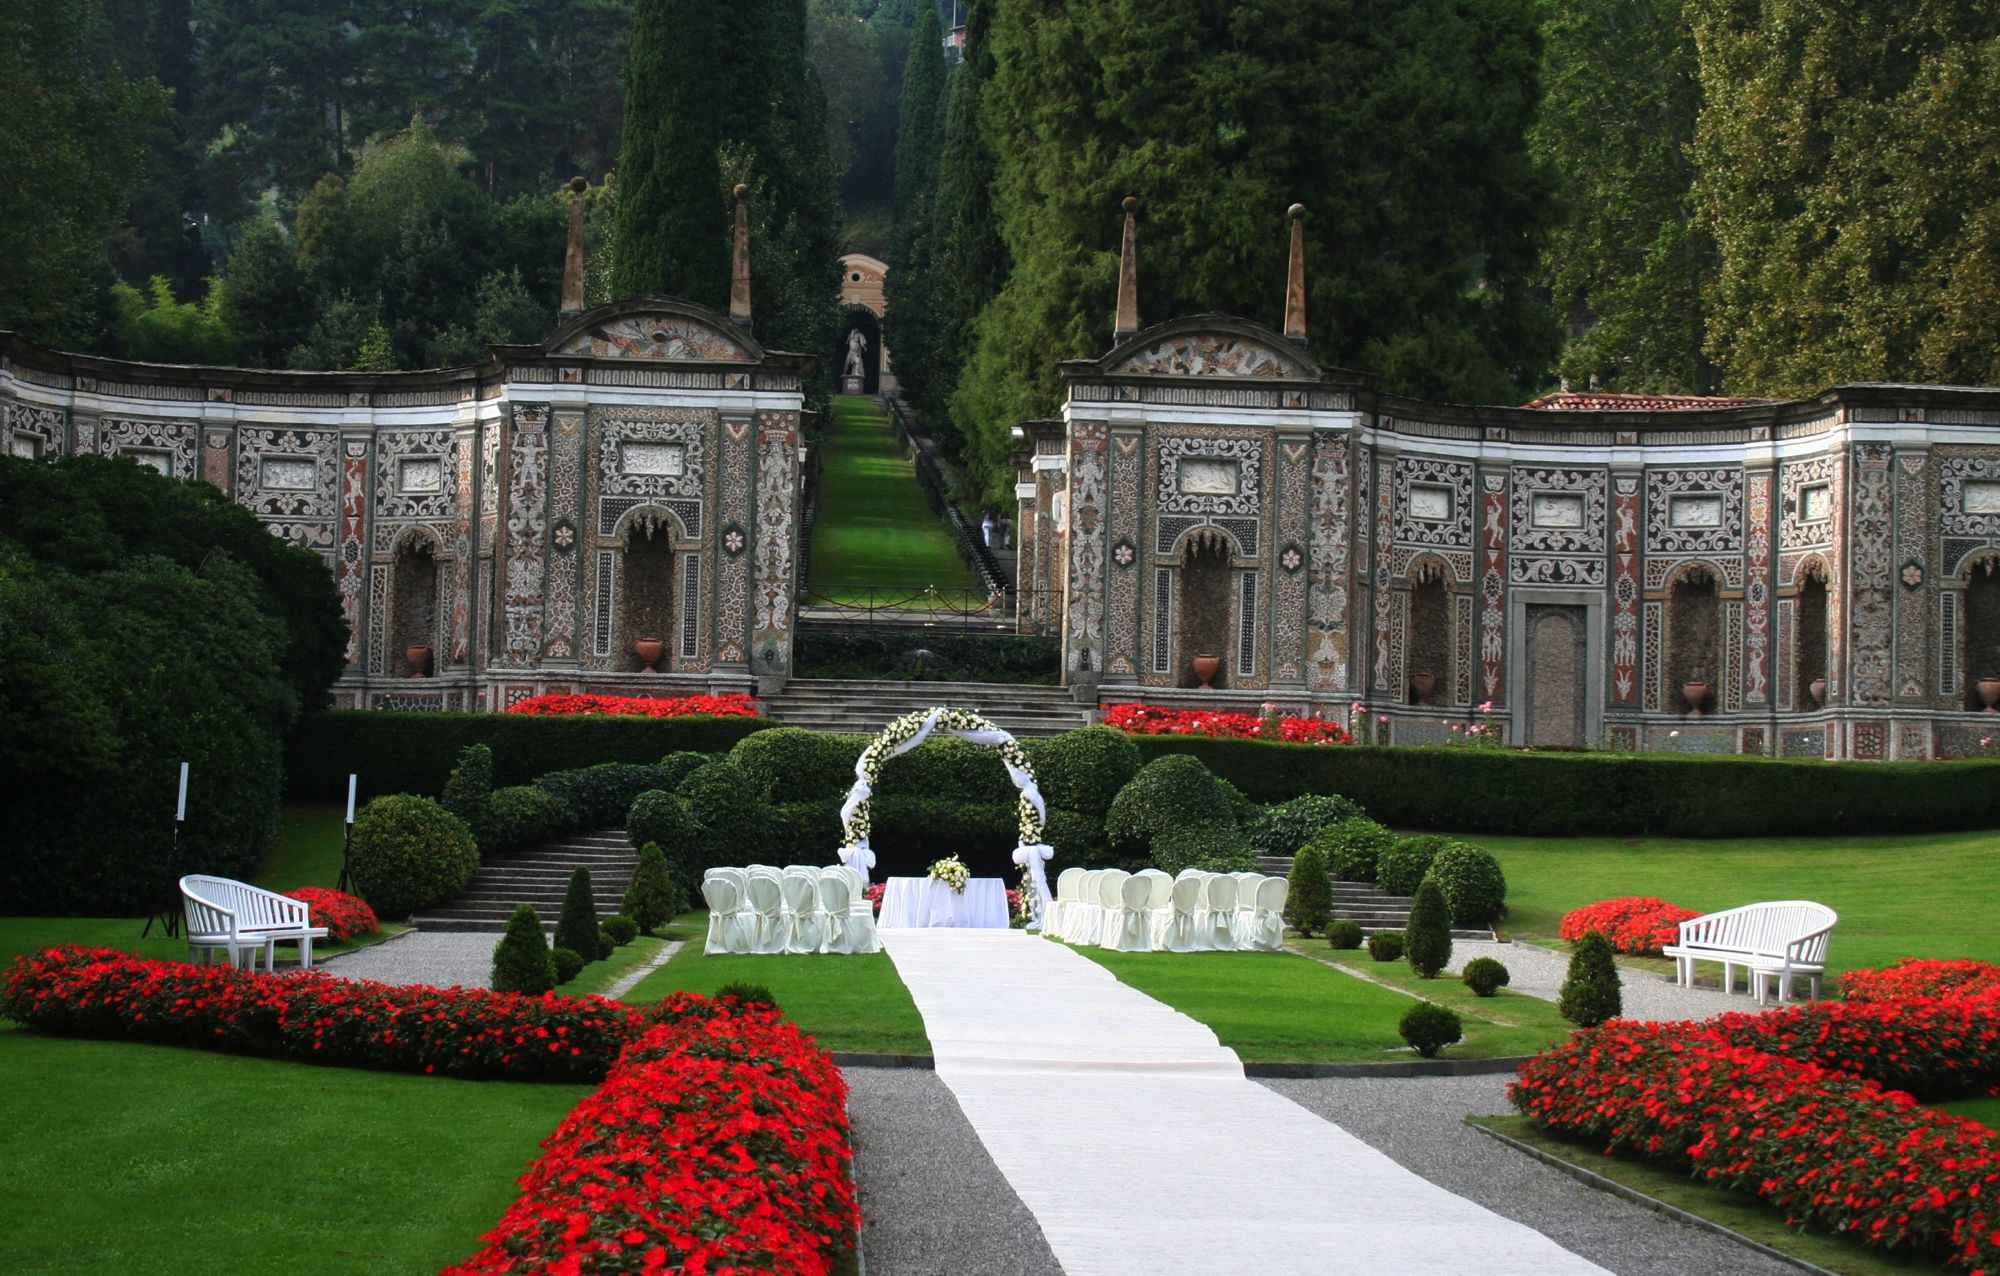 villa d 39 este wedding luxury hotels lake como italy wedding locations. Black Bedroom Furniture Sets. Home Design Ideas